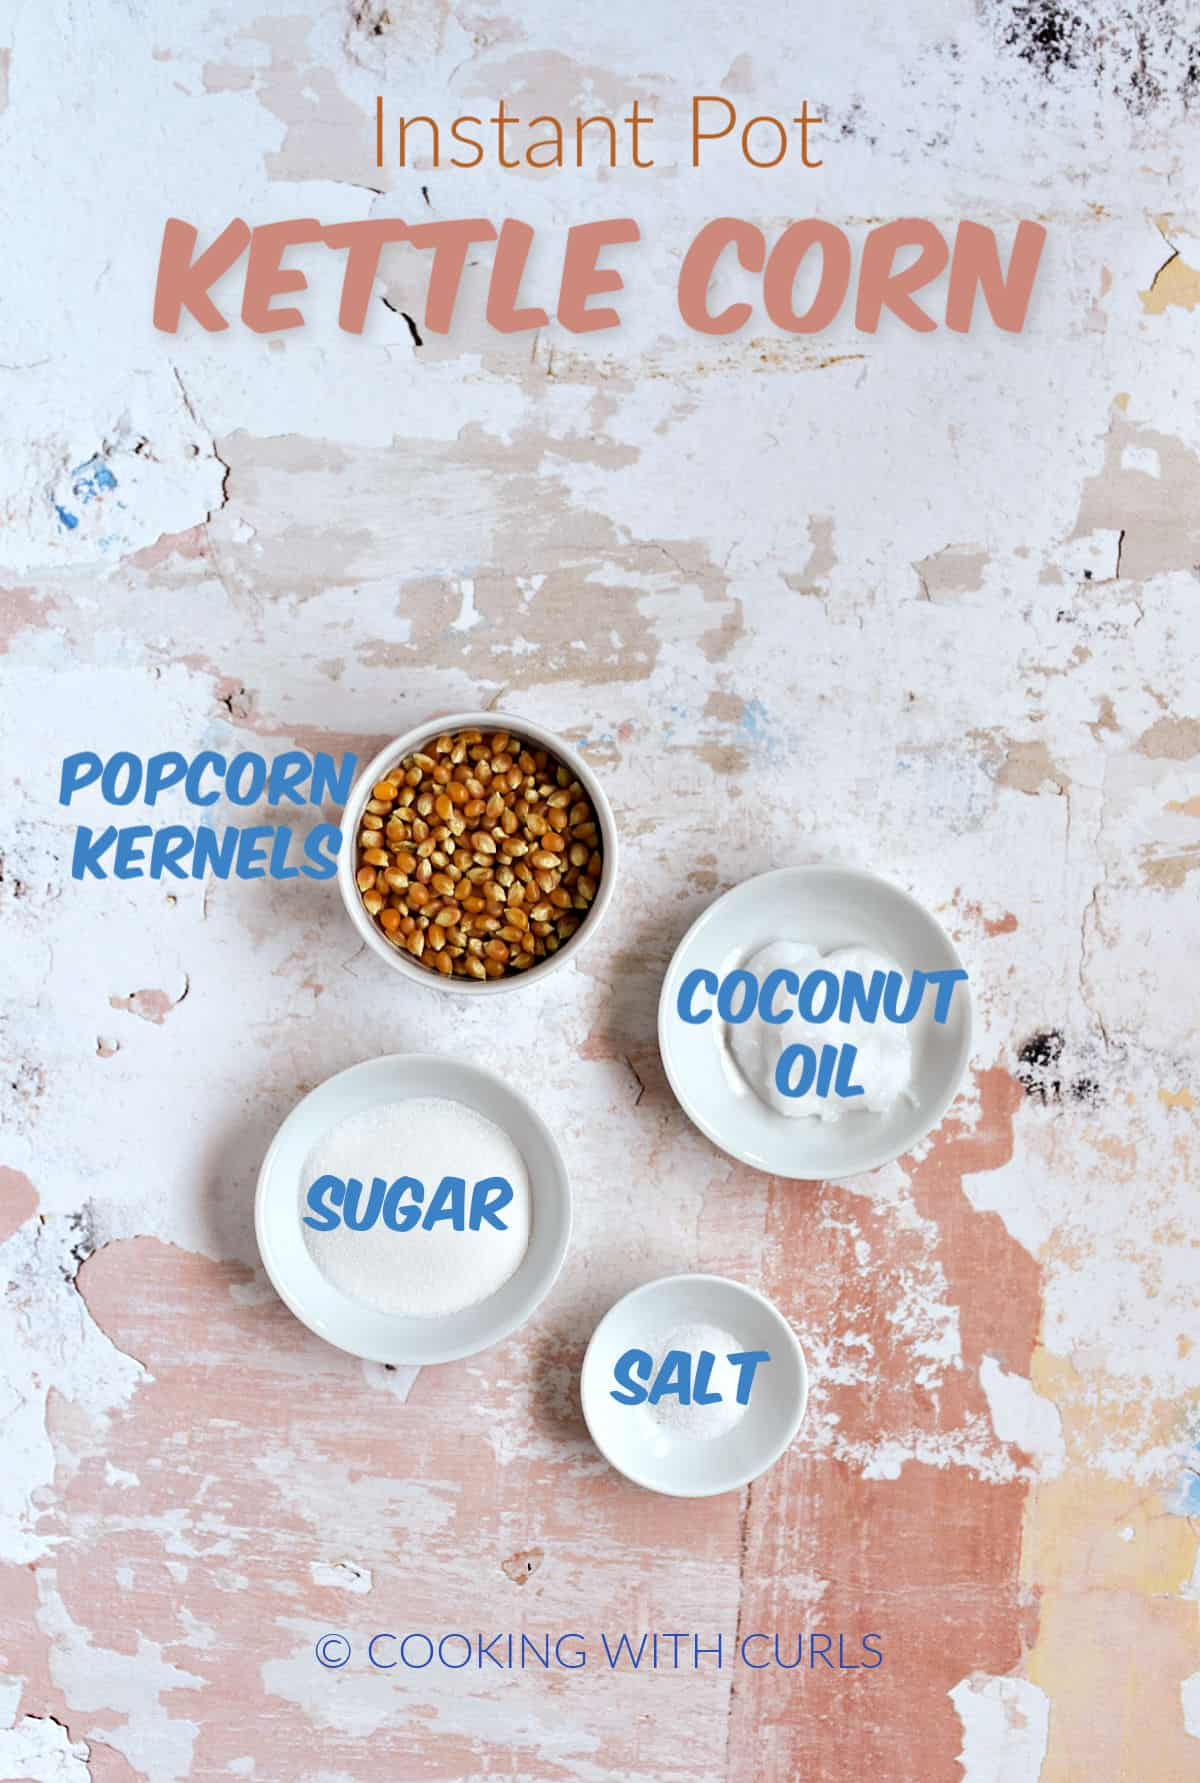 Popcorn kernels, coconut oil, sugar, and salt in small white bowls.